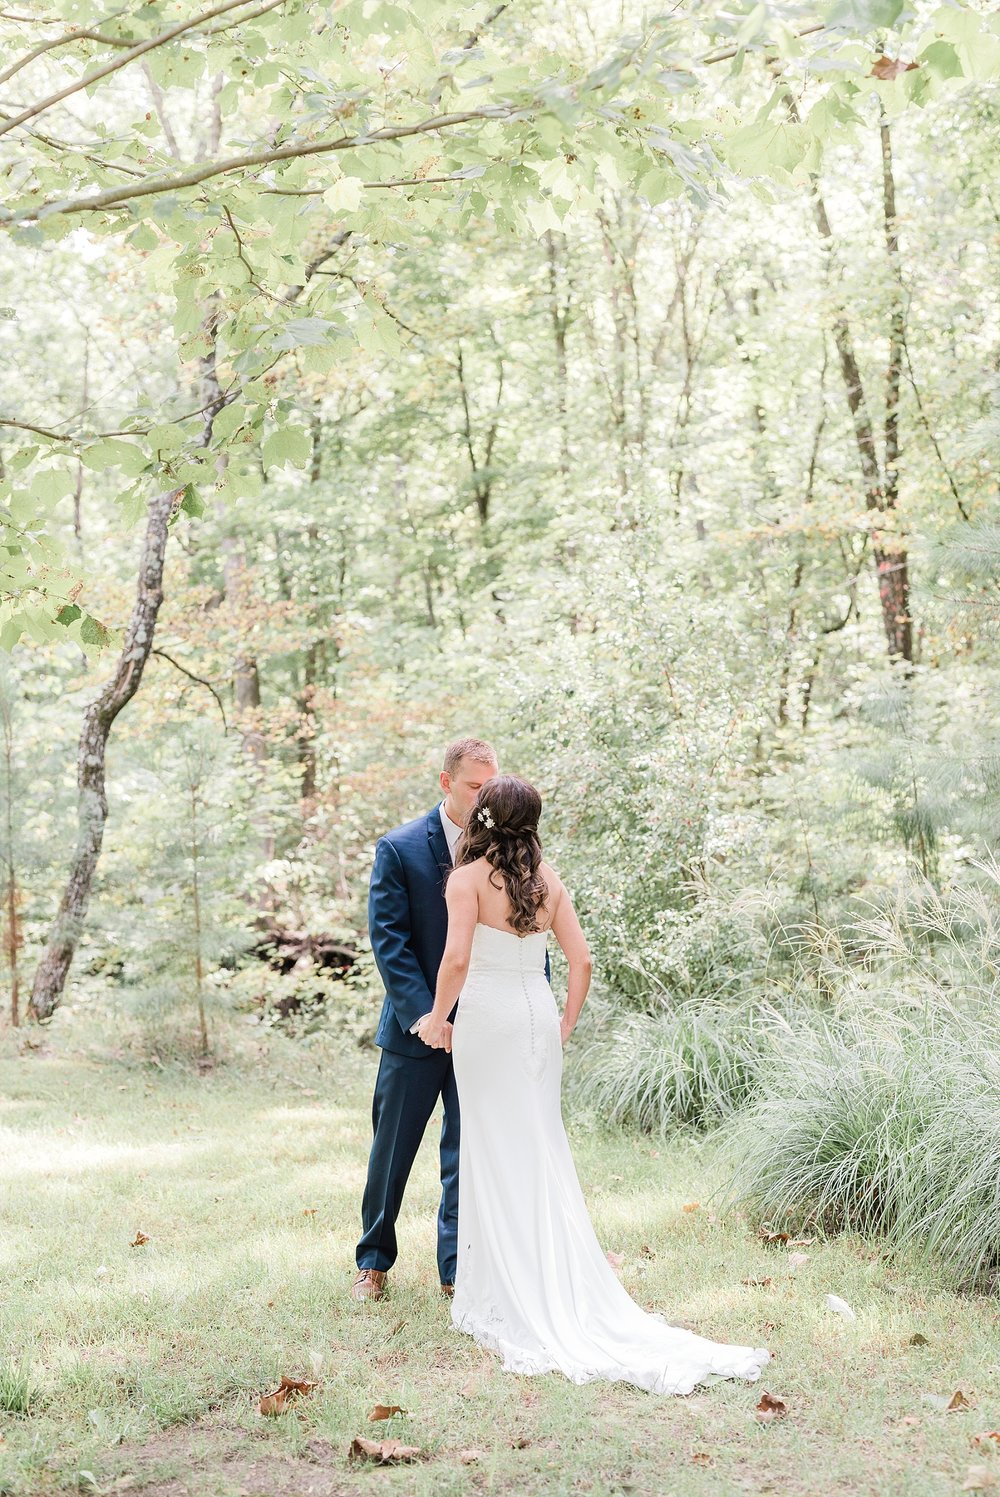 Romantic Summer Sunset Wedding Ceremony at Little Piney Lodge St. Louis Missouri by Kelsi Kliethermes Photography Fine Art Photographer_0045.jpg